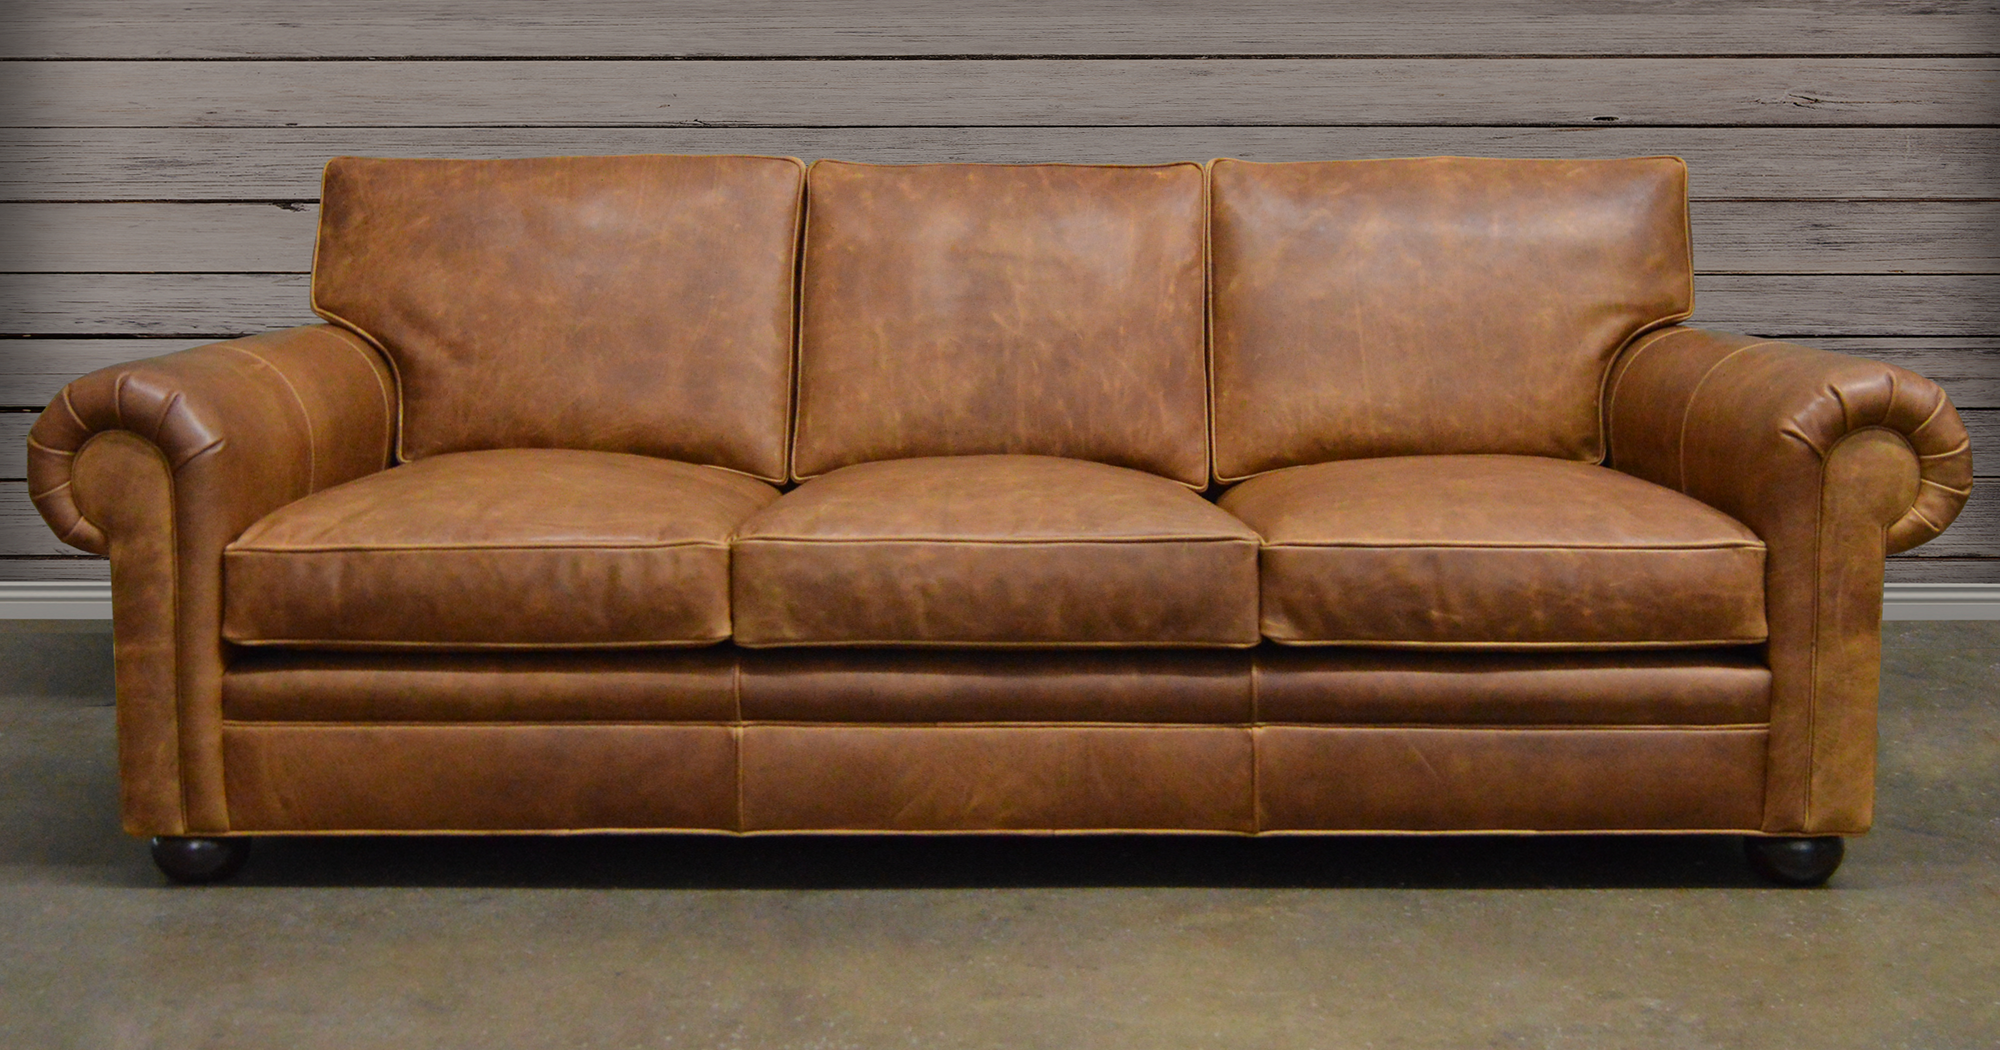 Langston Leather Sofa Leather Sofas Leathergroups Com